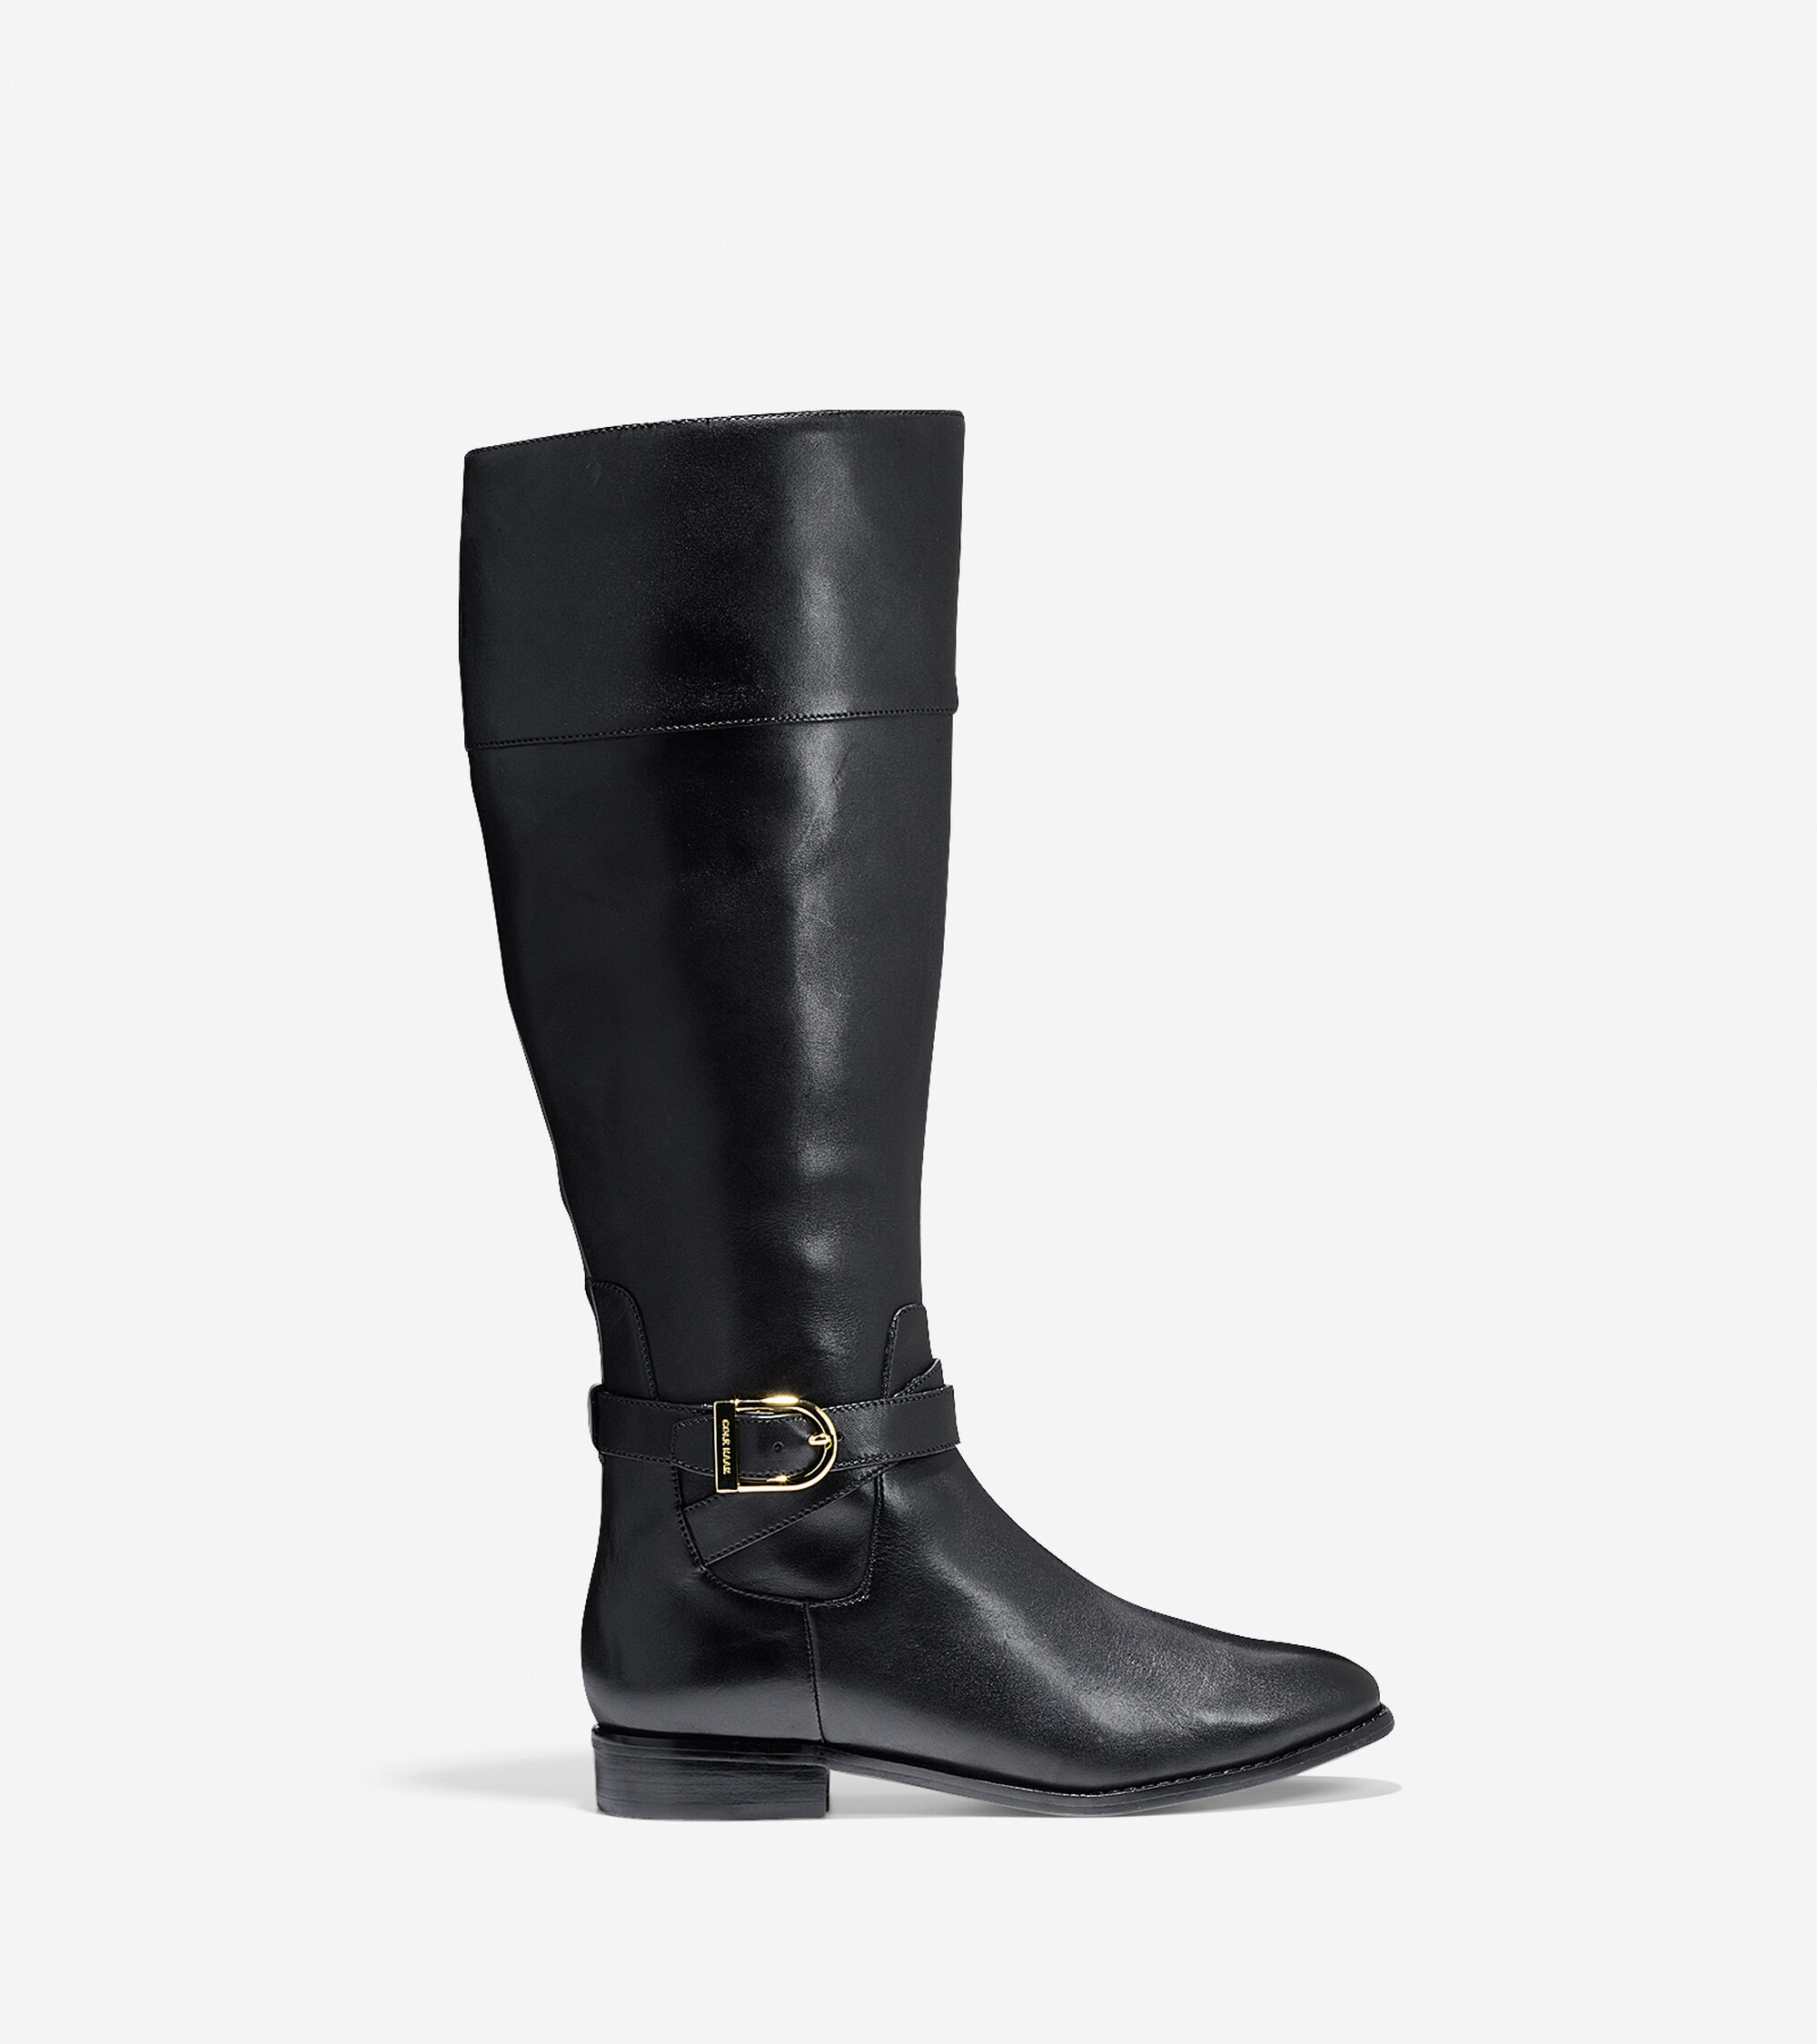 Shop women's stylish wide calf boots at derfkasiber.ga Find rain boots, riding boots and more. Free shipping and returns on top brands like Naturalizer, Born and Vince Camuto.